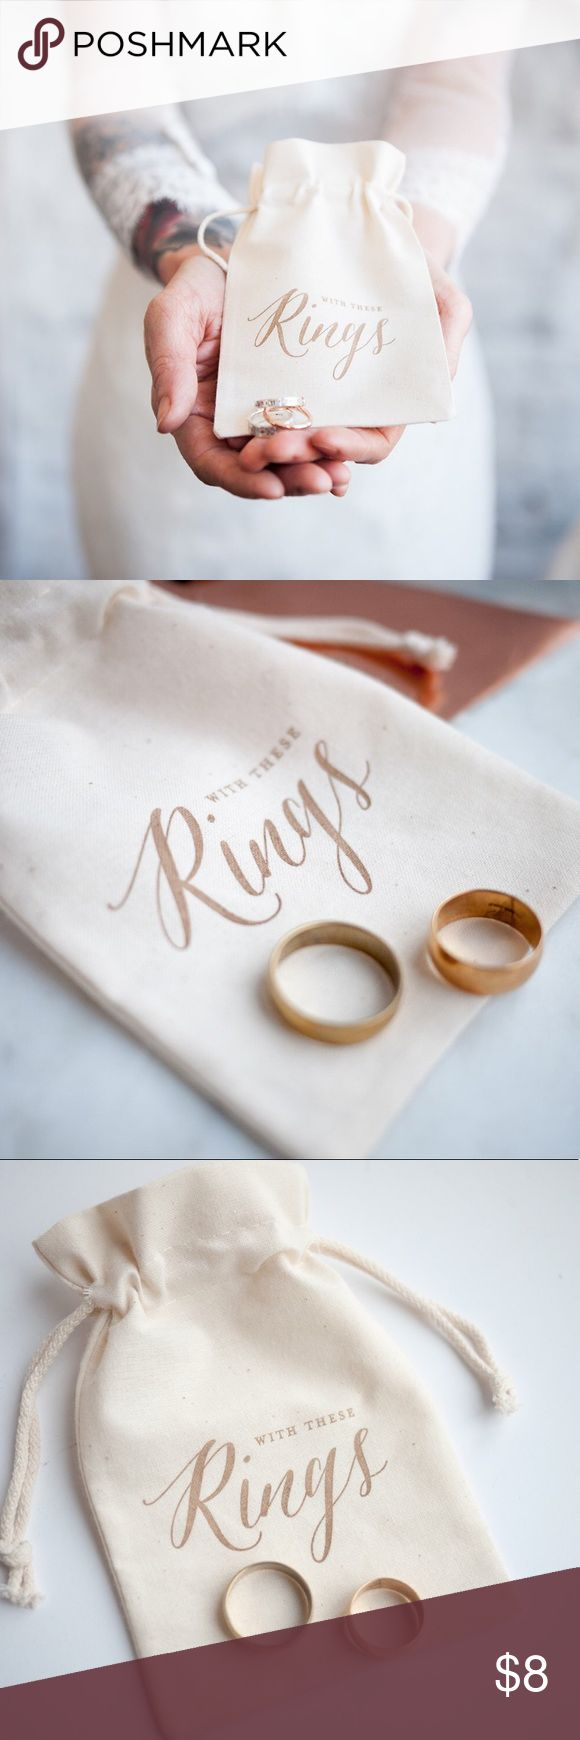 """Gold Calligraphy Wedding Ring Bag, ring pillow alt Handmade item. Materials: natural cotton, linen, letterpress. Perfect for the rustic Autumn or Fall wedding. This bag is an idea alternative to a ring pillow or the perfect size for the best man to pop in his pocket and and keep your wedding rings safe.  Size approx: 10cm(W) x 15cm (H) = 3.9"""" x 5.9""""  Easy to keep closed and to open, no fumbling around at the alter. Good size will fit snuggly in a breast or pants pocket. Makes a lovely…"""